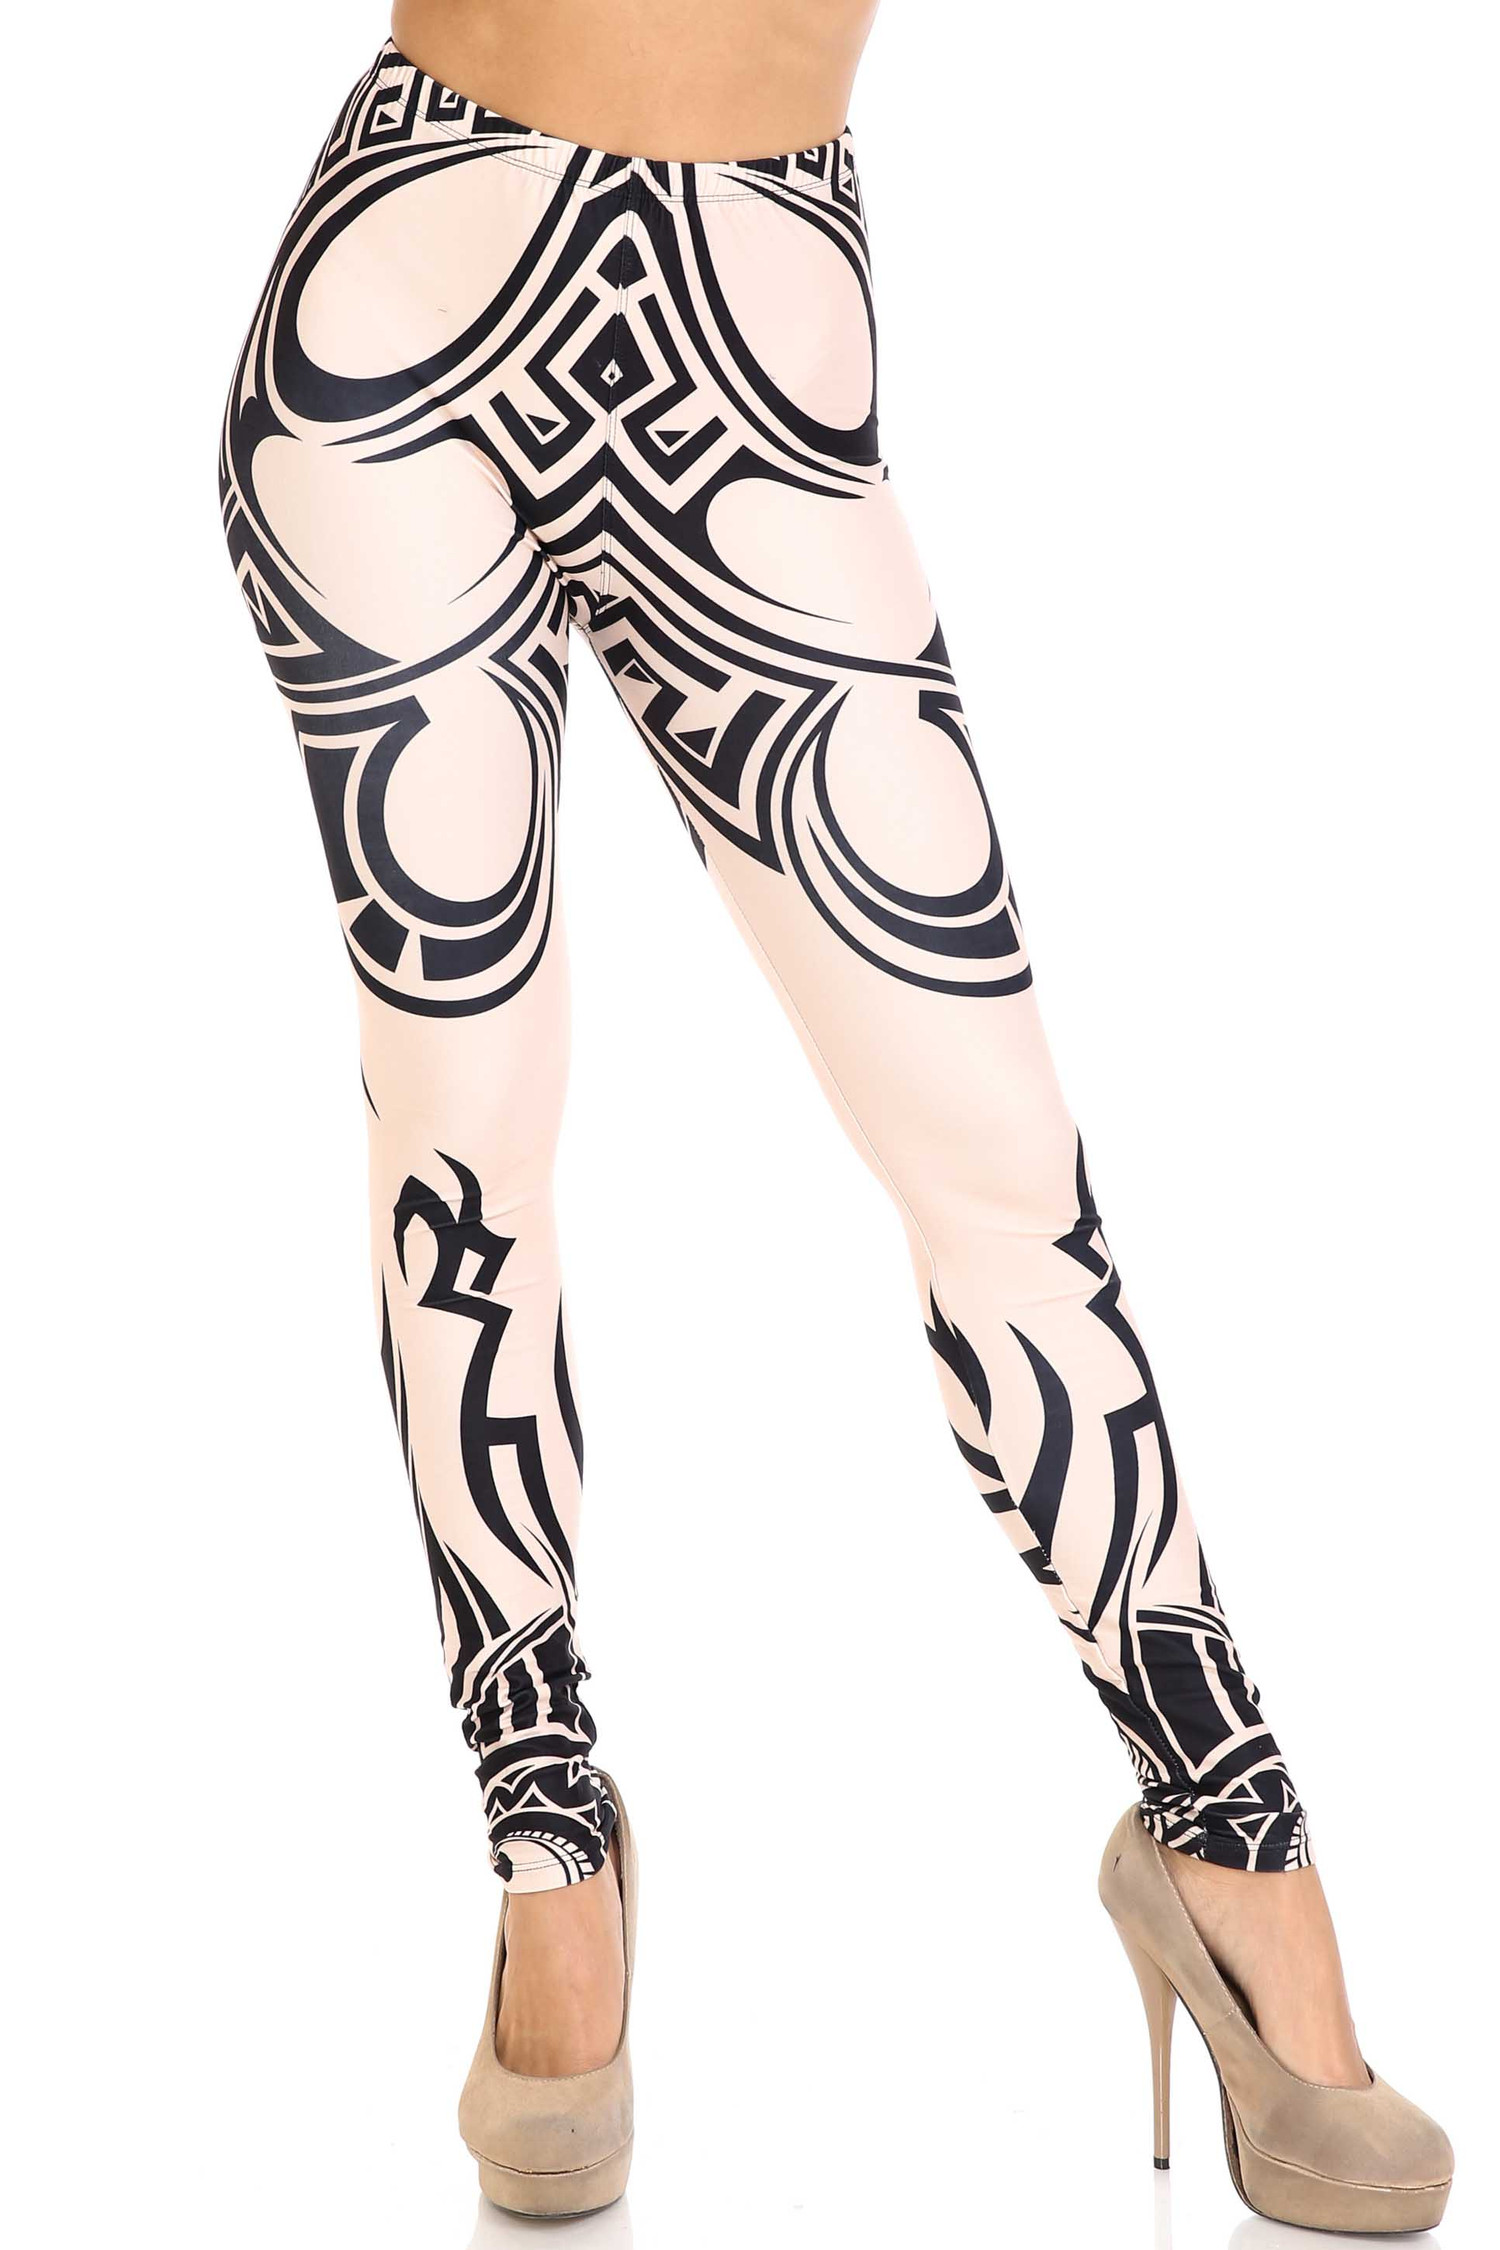 Creamy Soft Celestial Tribal Extra Plus Size Leggings - 3X-5X - USA Fashion™